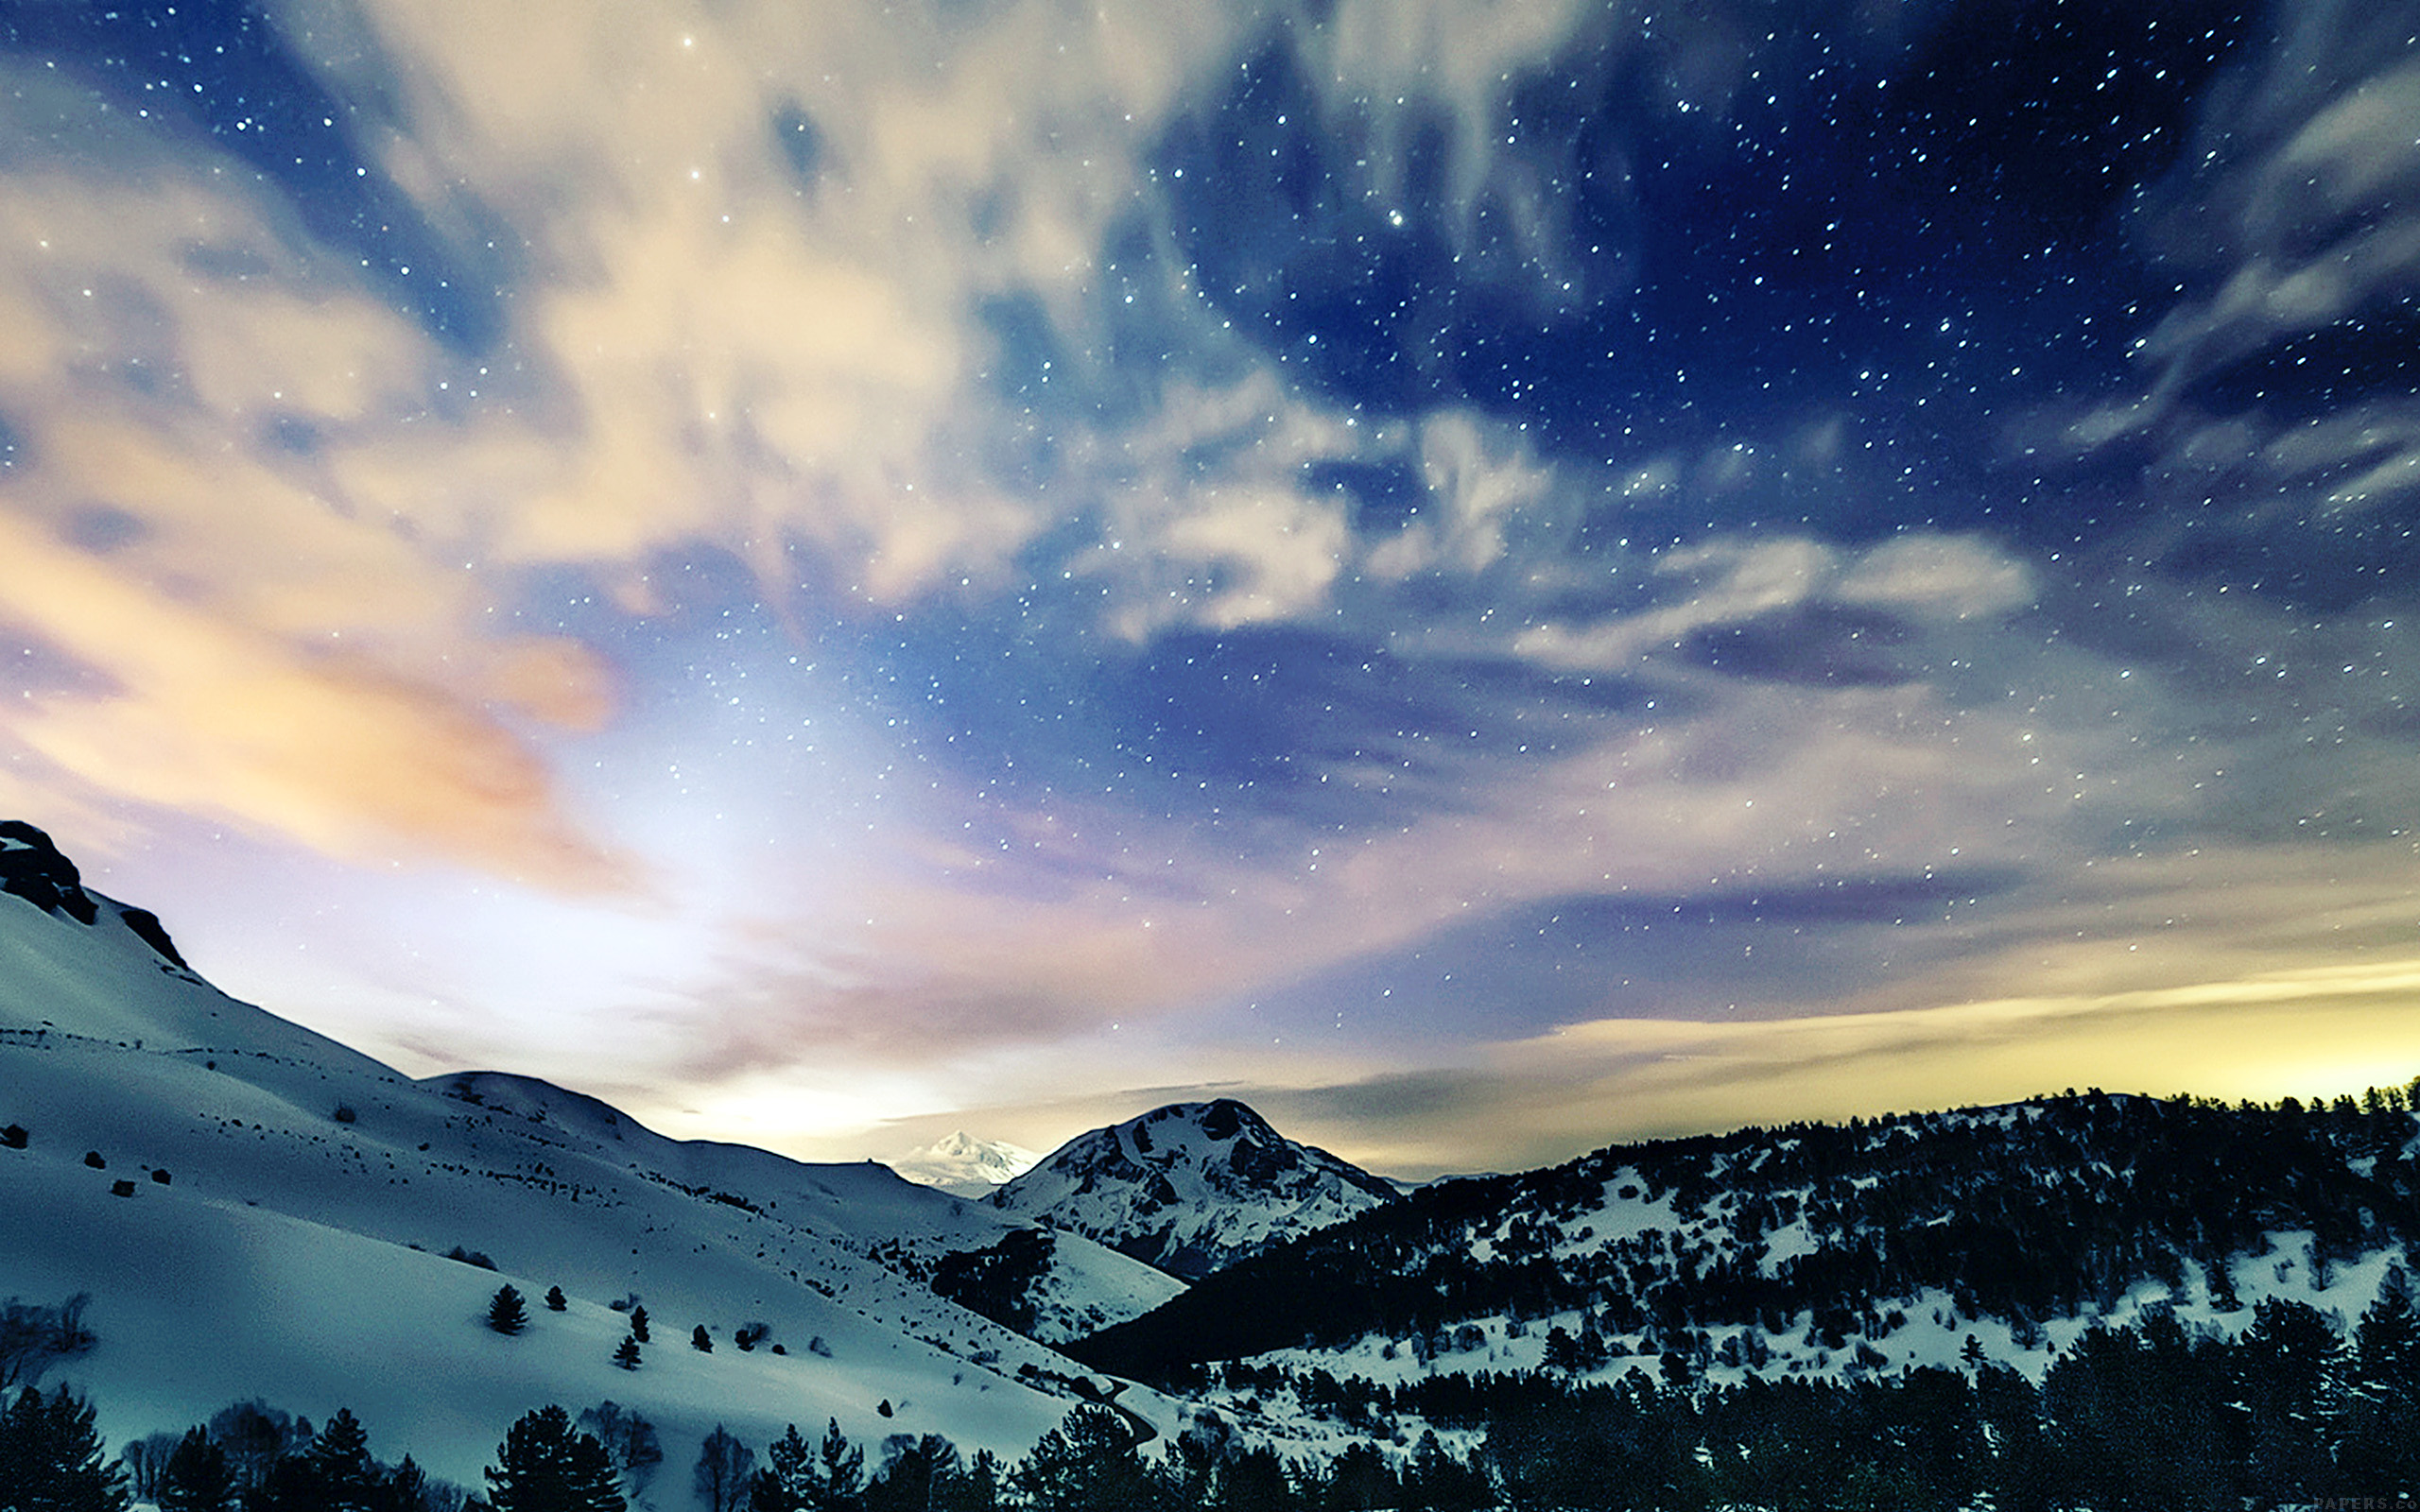 Mini Car Hd Wallpaper Mk79 Aurora Star Sky Snow Night Mountain Winter Nature